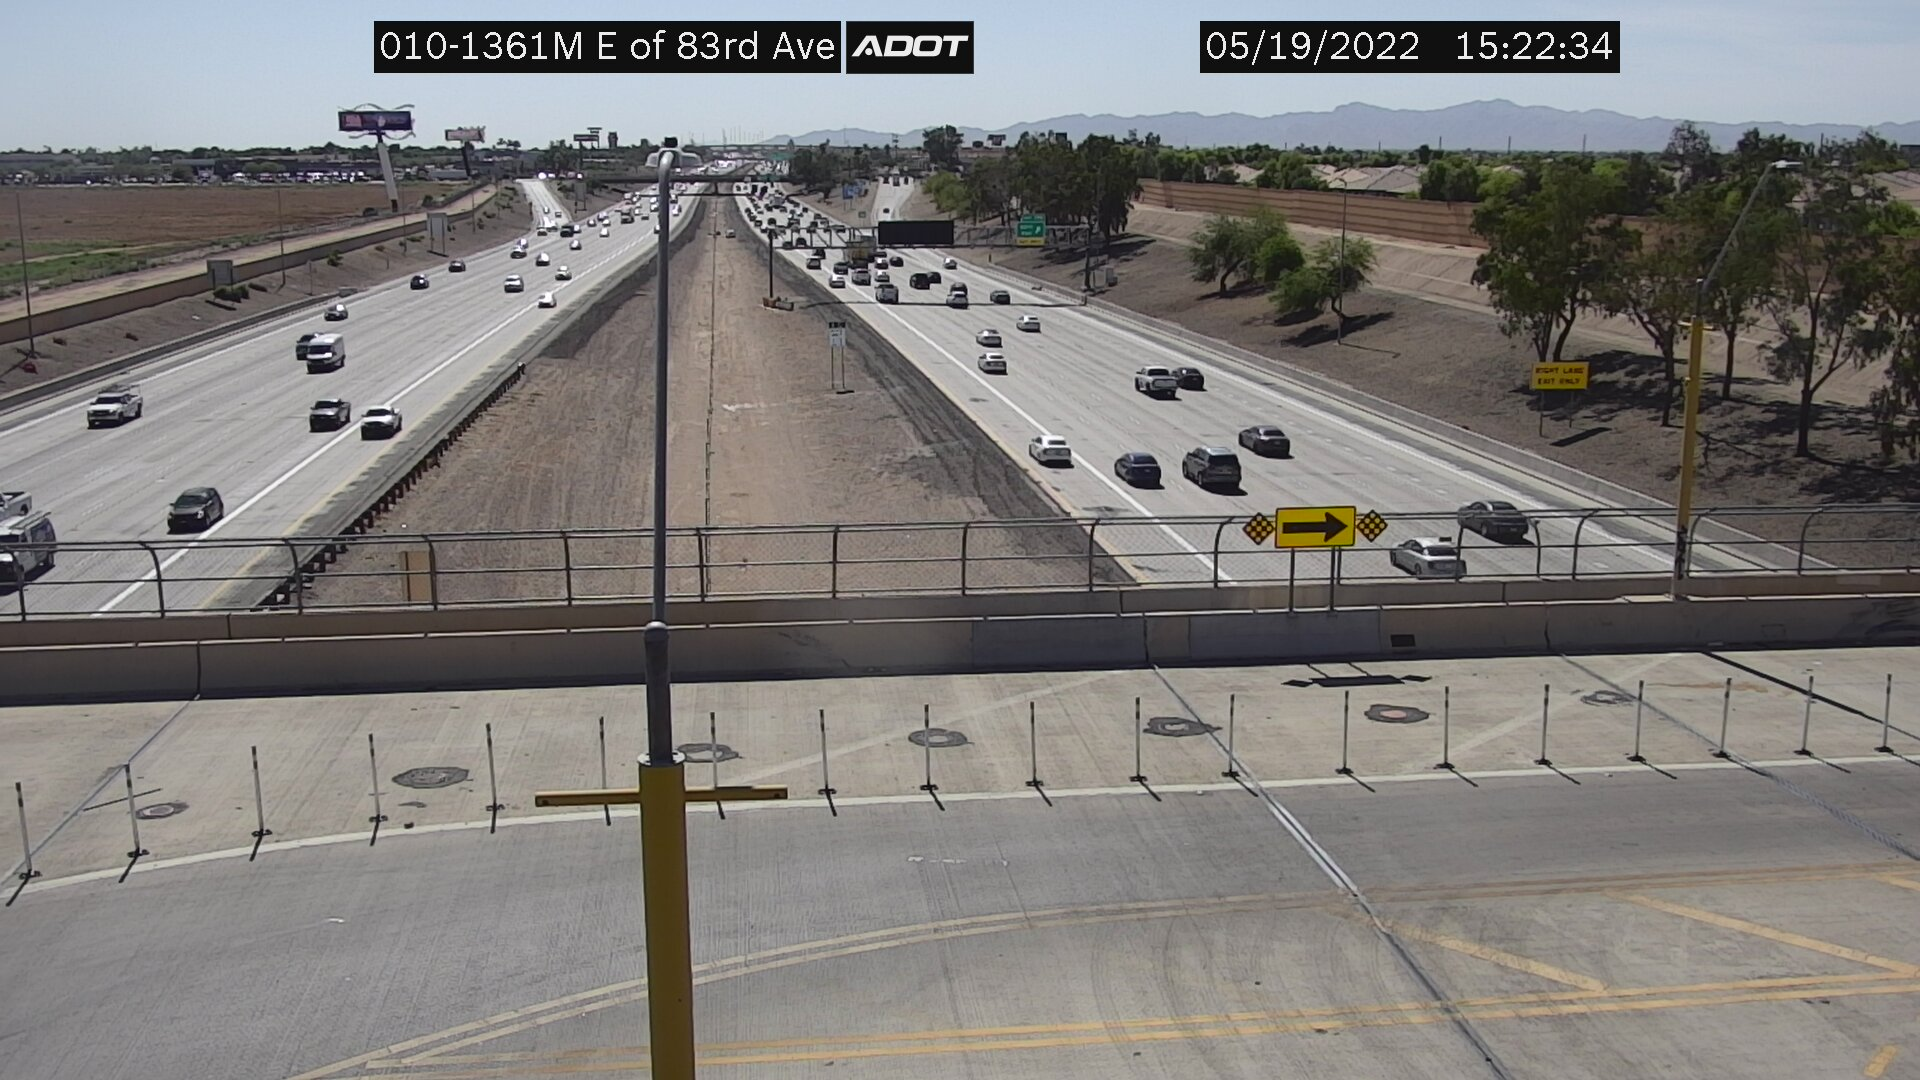 E of 83rd Ave M (I10) (002) - Phoenix and Arizona